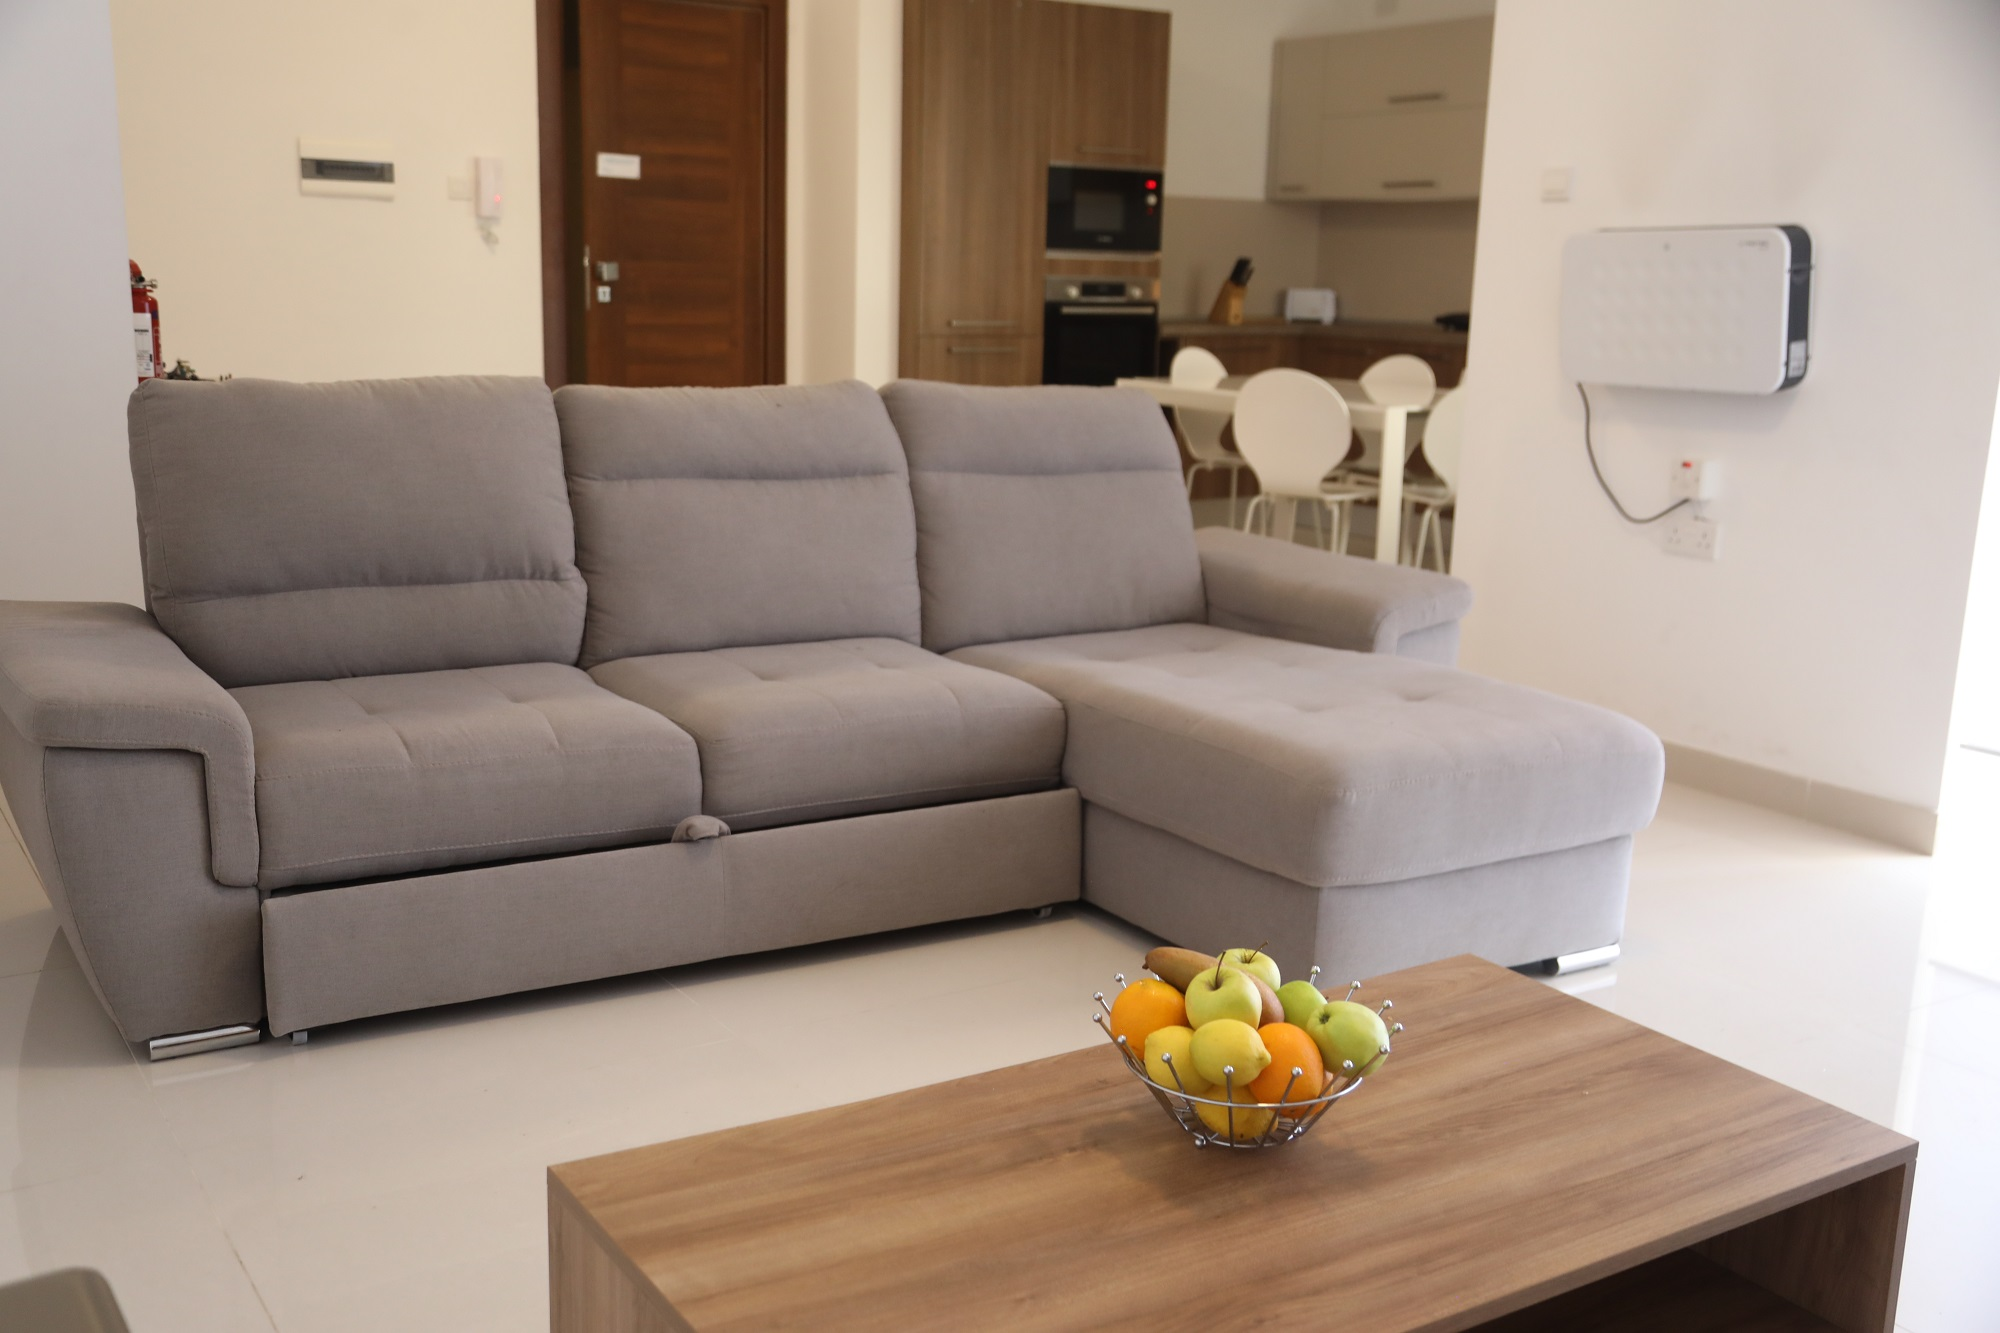 The living area at our BELS Malta superior residence